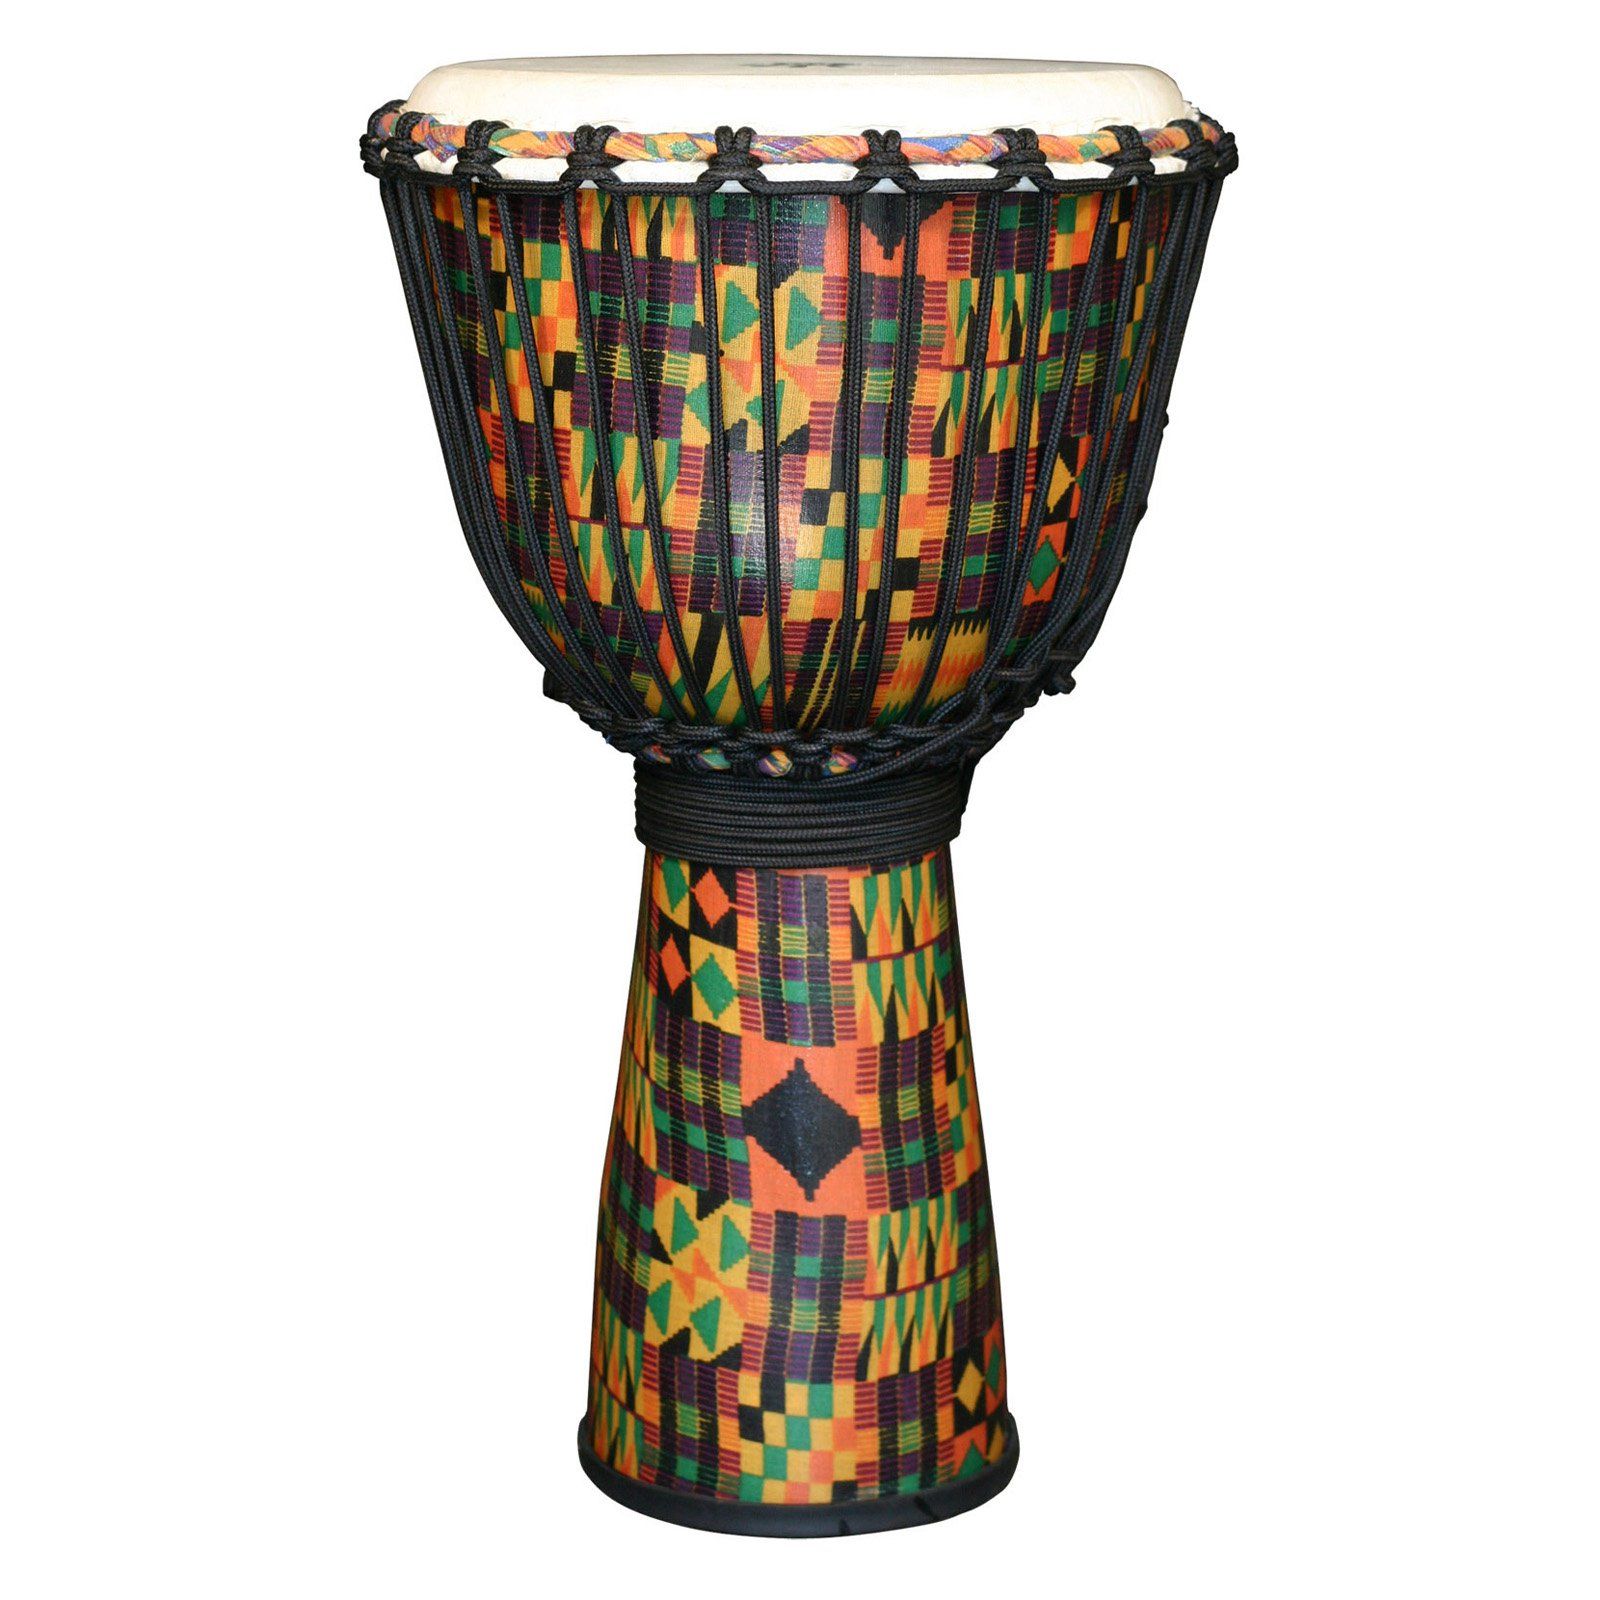 X8 Drums Kente Cloth Royal Djembe